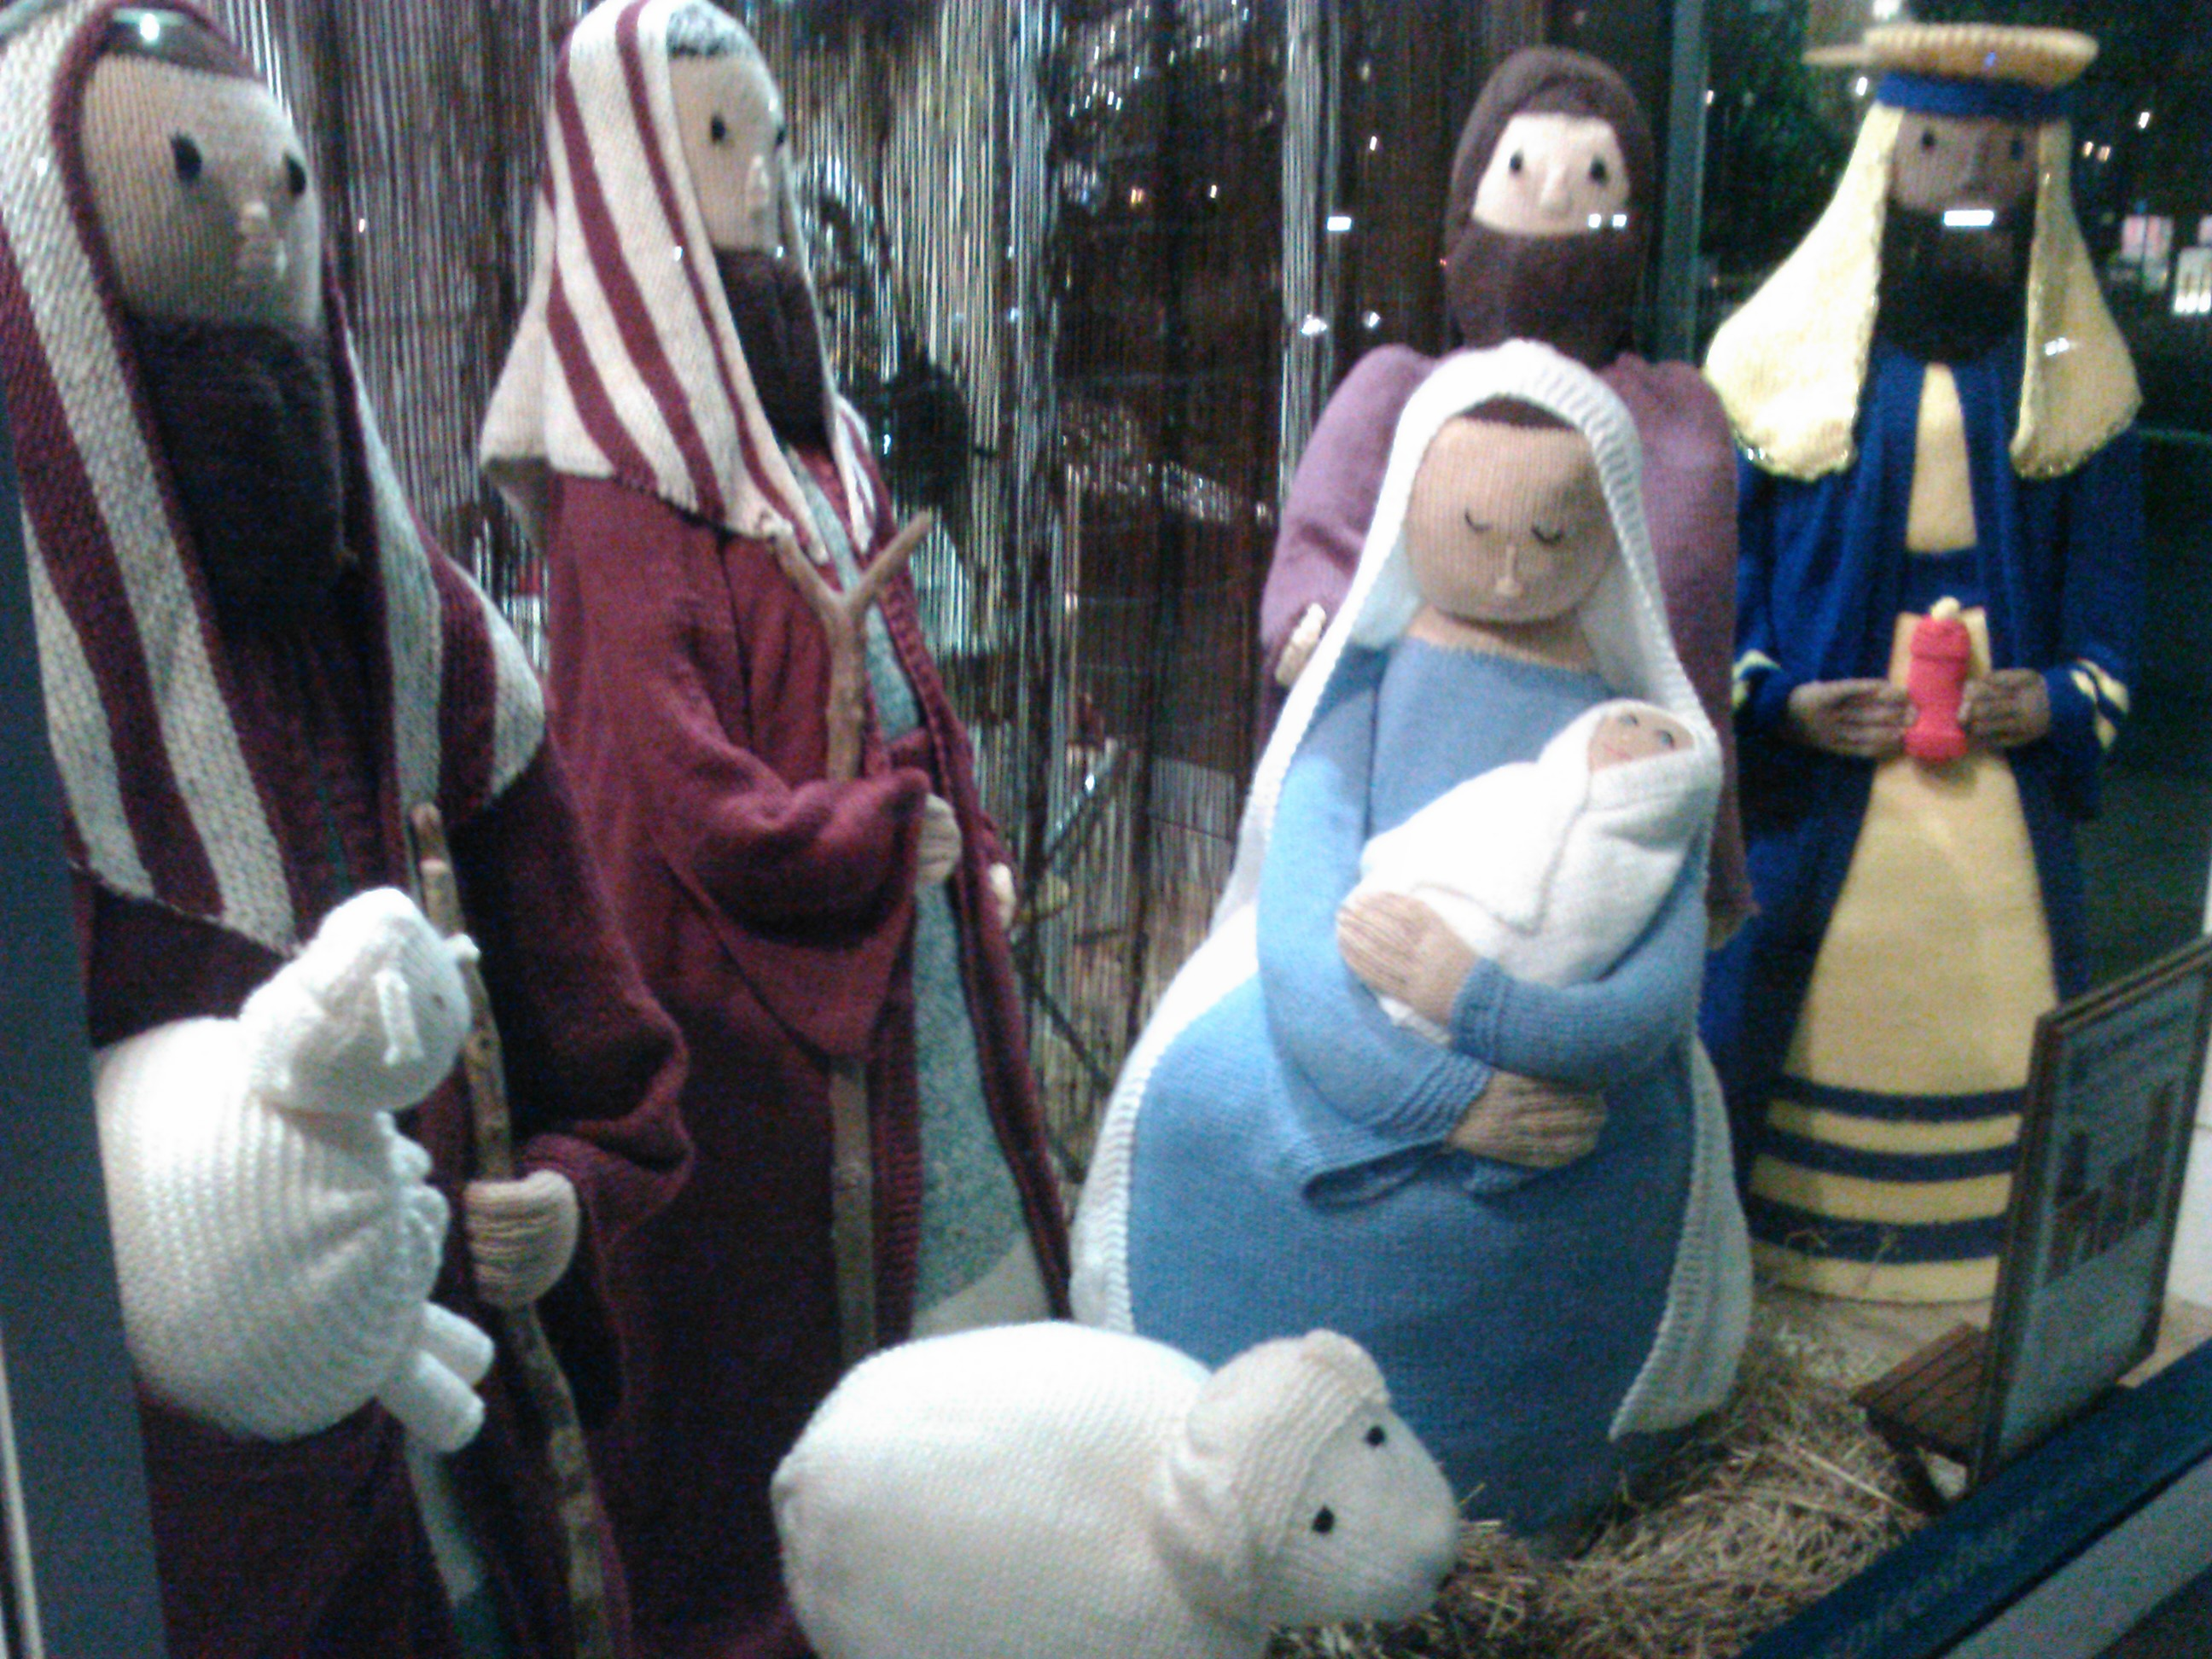 Knitted nativity scene